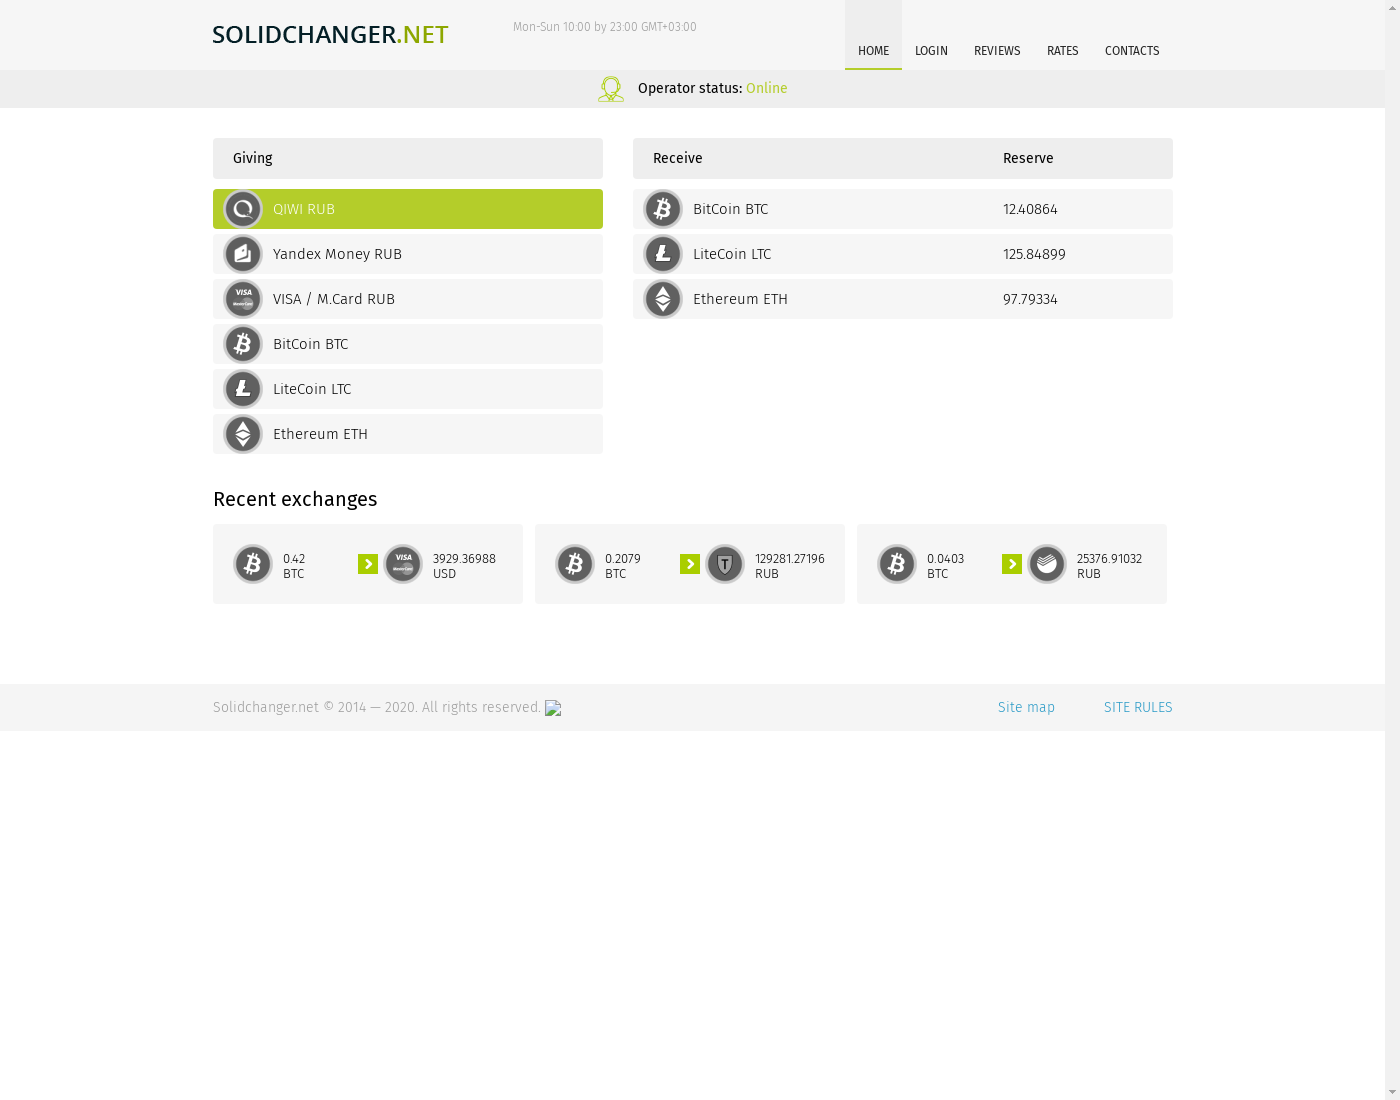 solidchanger user interface: the home page in English